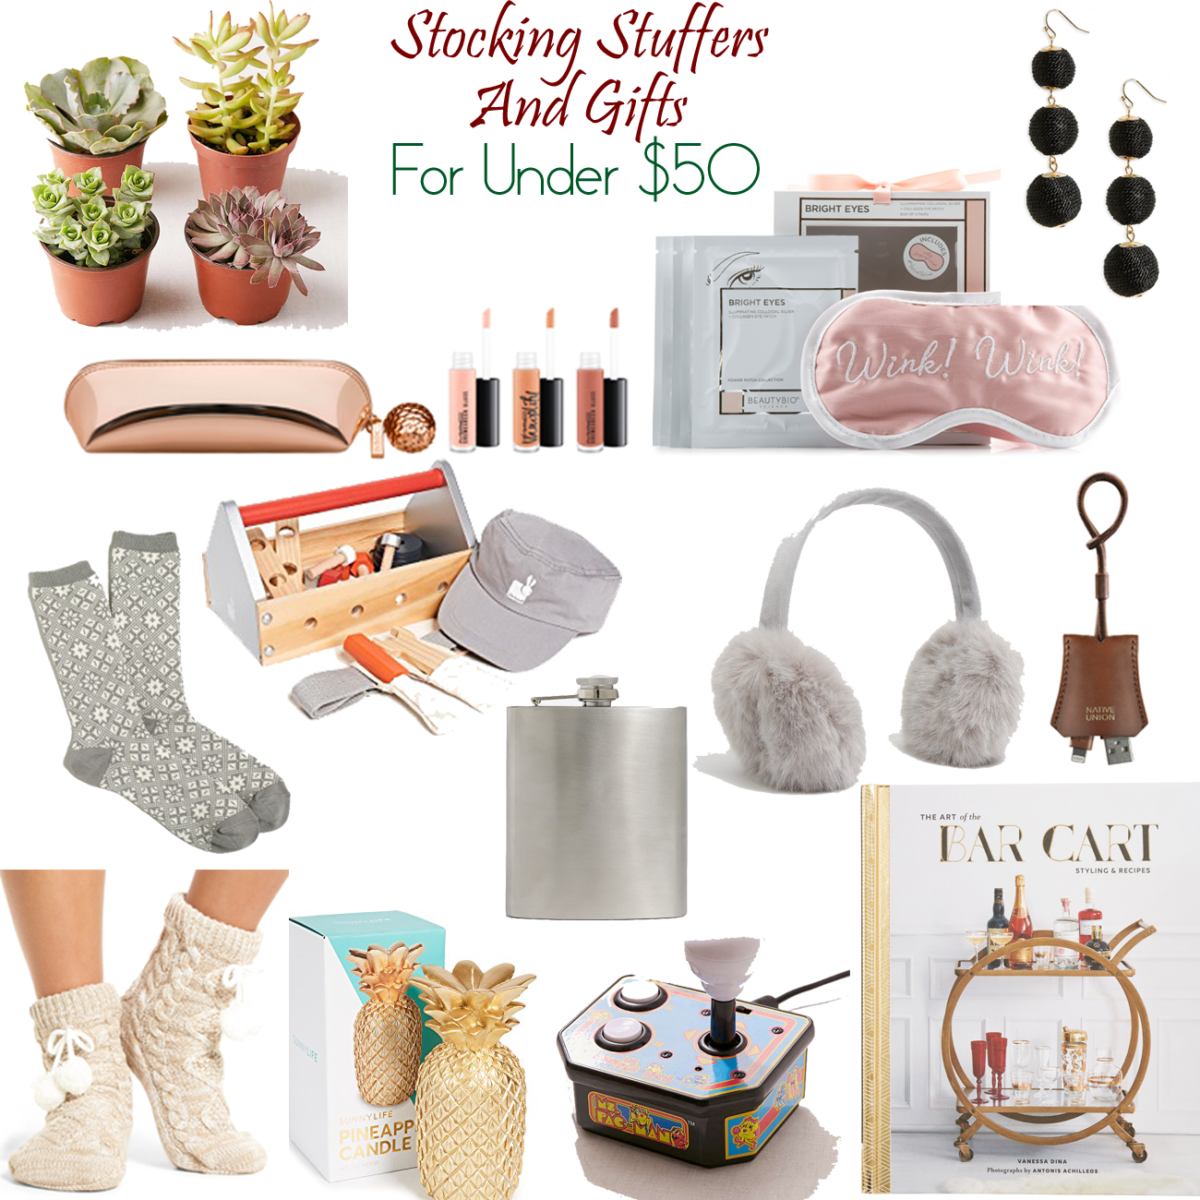 Holiday Gifts for Under $50 and Great Stocking Stuffers